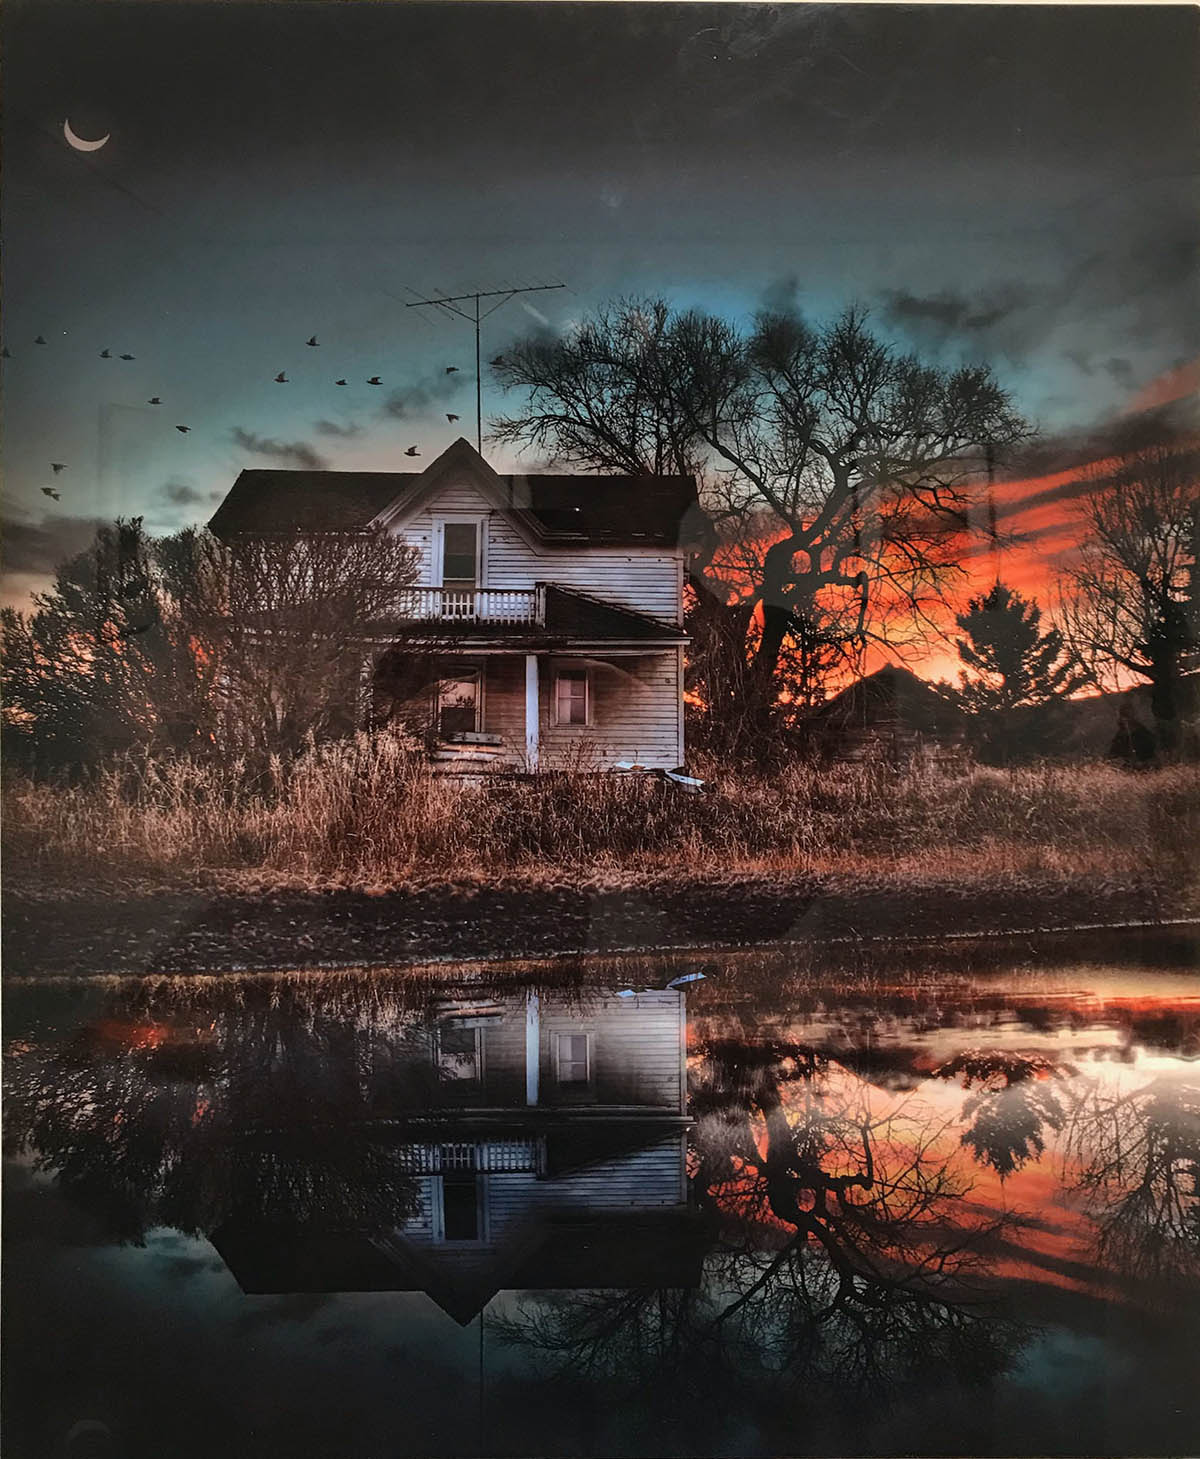 Photograph of an abandoned house in a rural area with an orange sunset behind it.